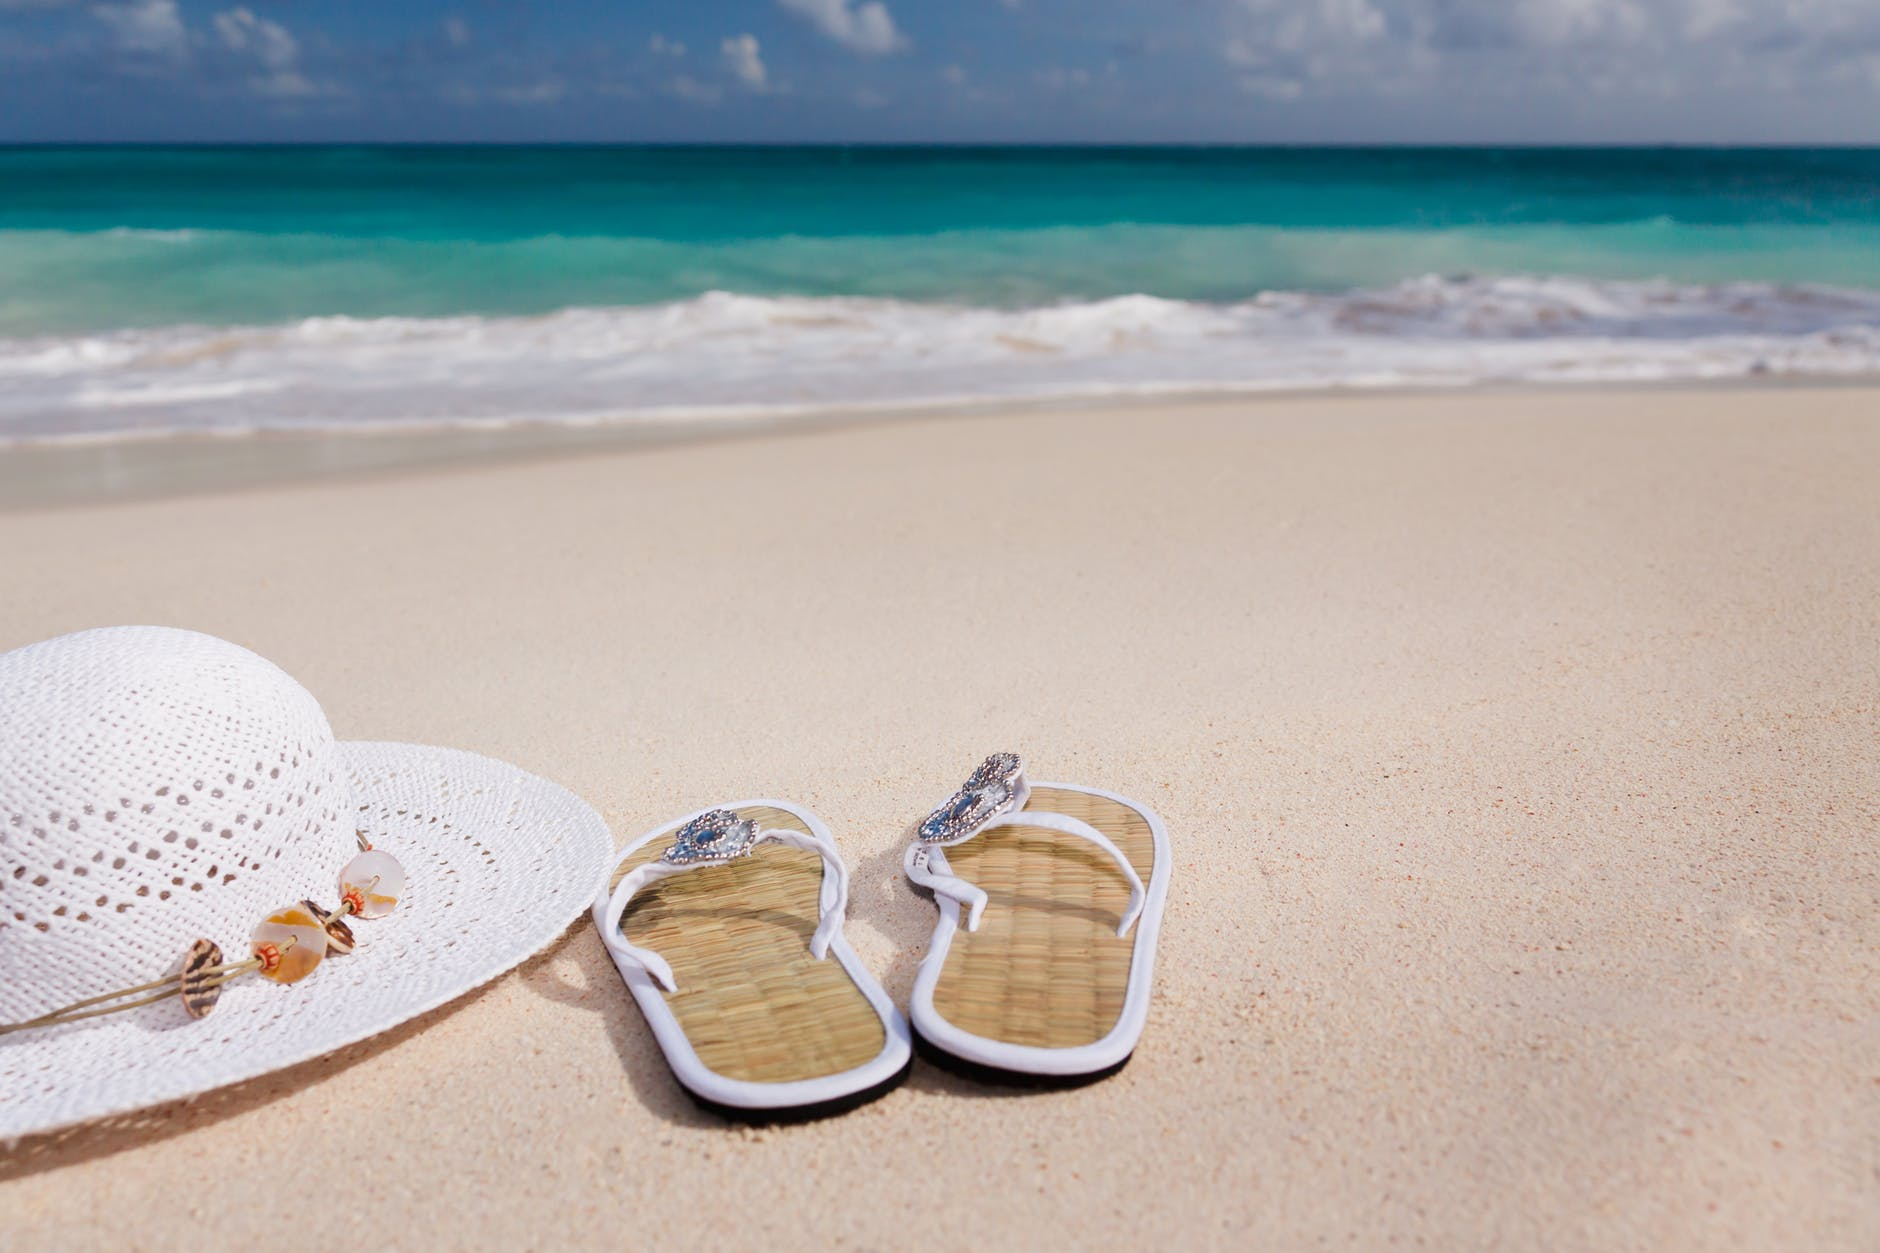 beach sandals and hat